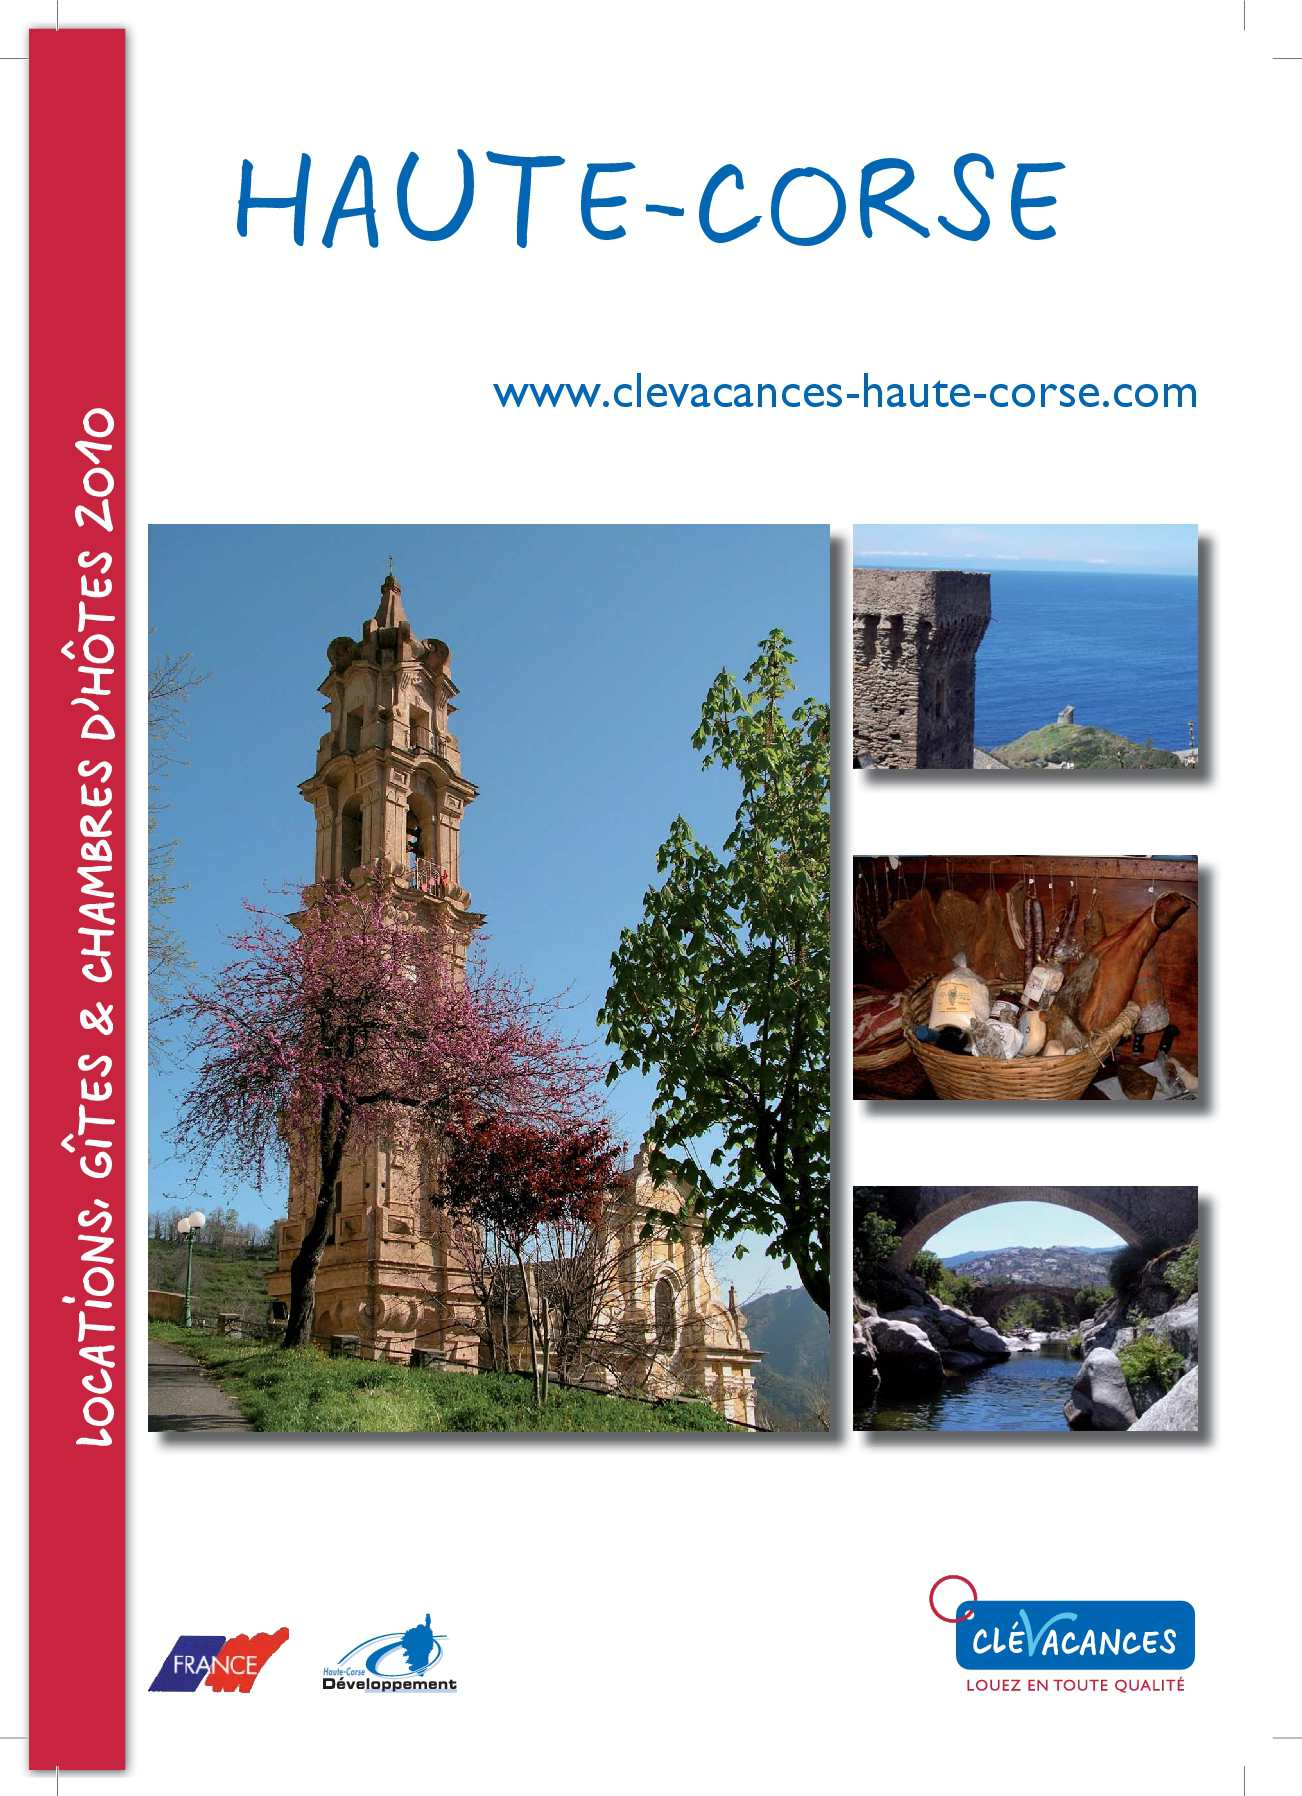 Calam o locations gites et chambres d 39 hotes clevacances for Chambre d agriculture haute corse